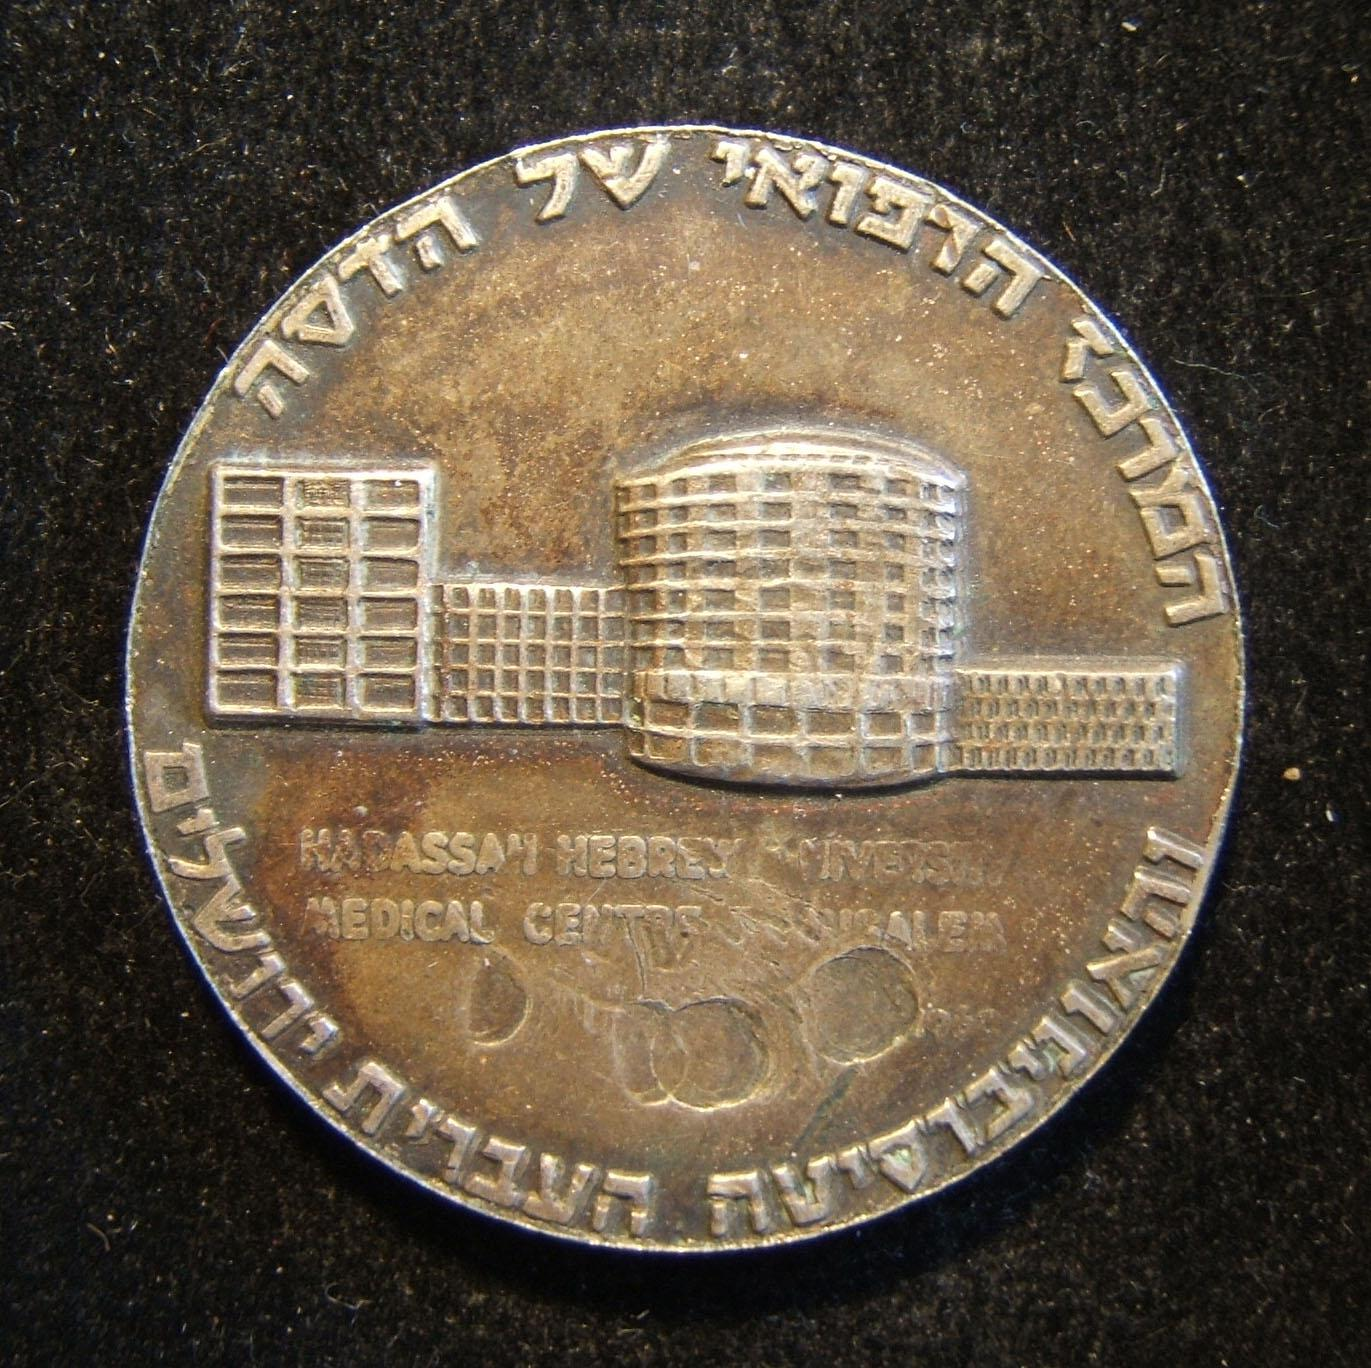 Israel: Hadassah Hebrew University Medical Center small state medal in silver, 1960/61 - spectacular error (trial?): standard 35mm silver issue w/ combination minting errors: mis-s